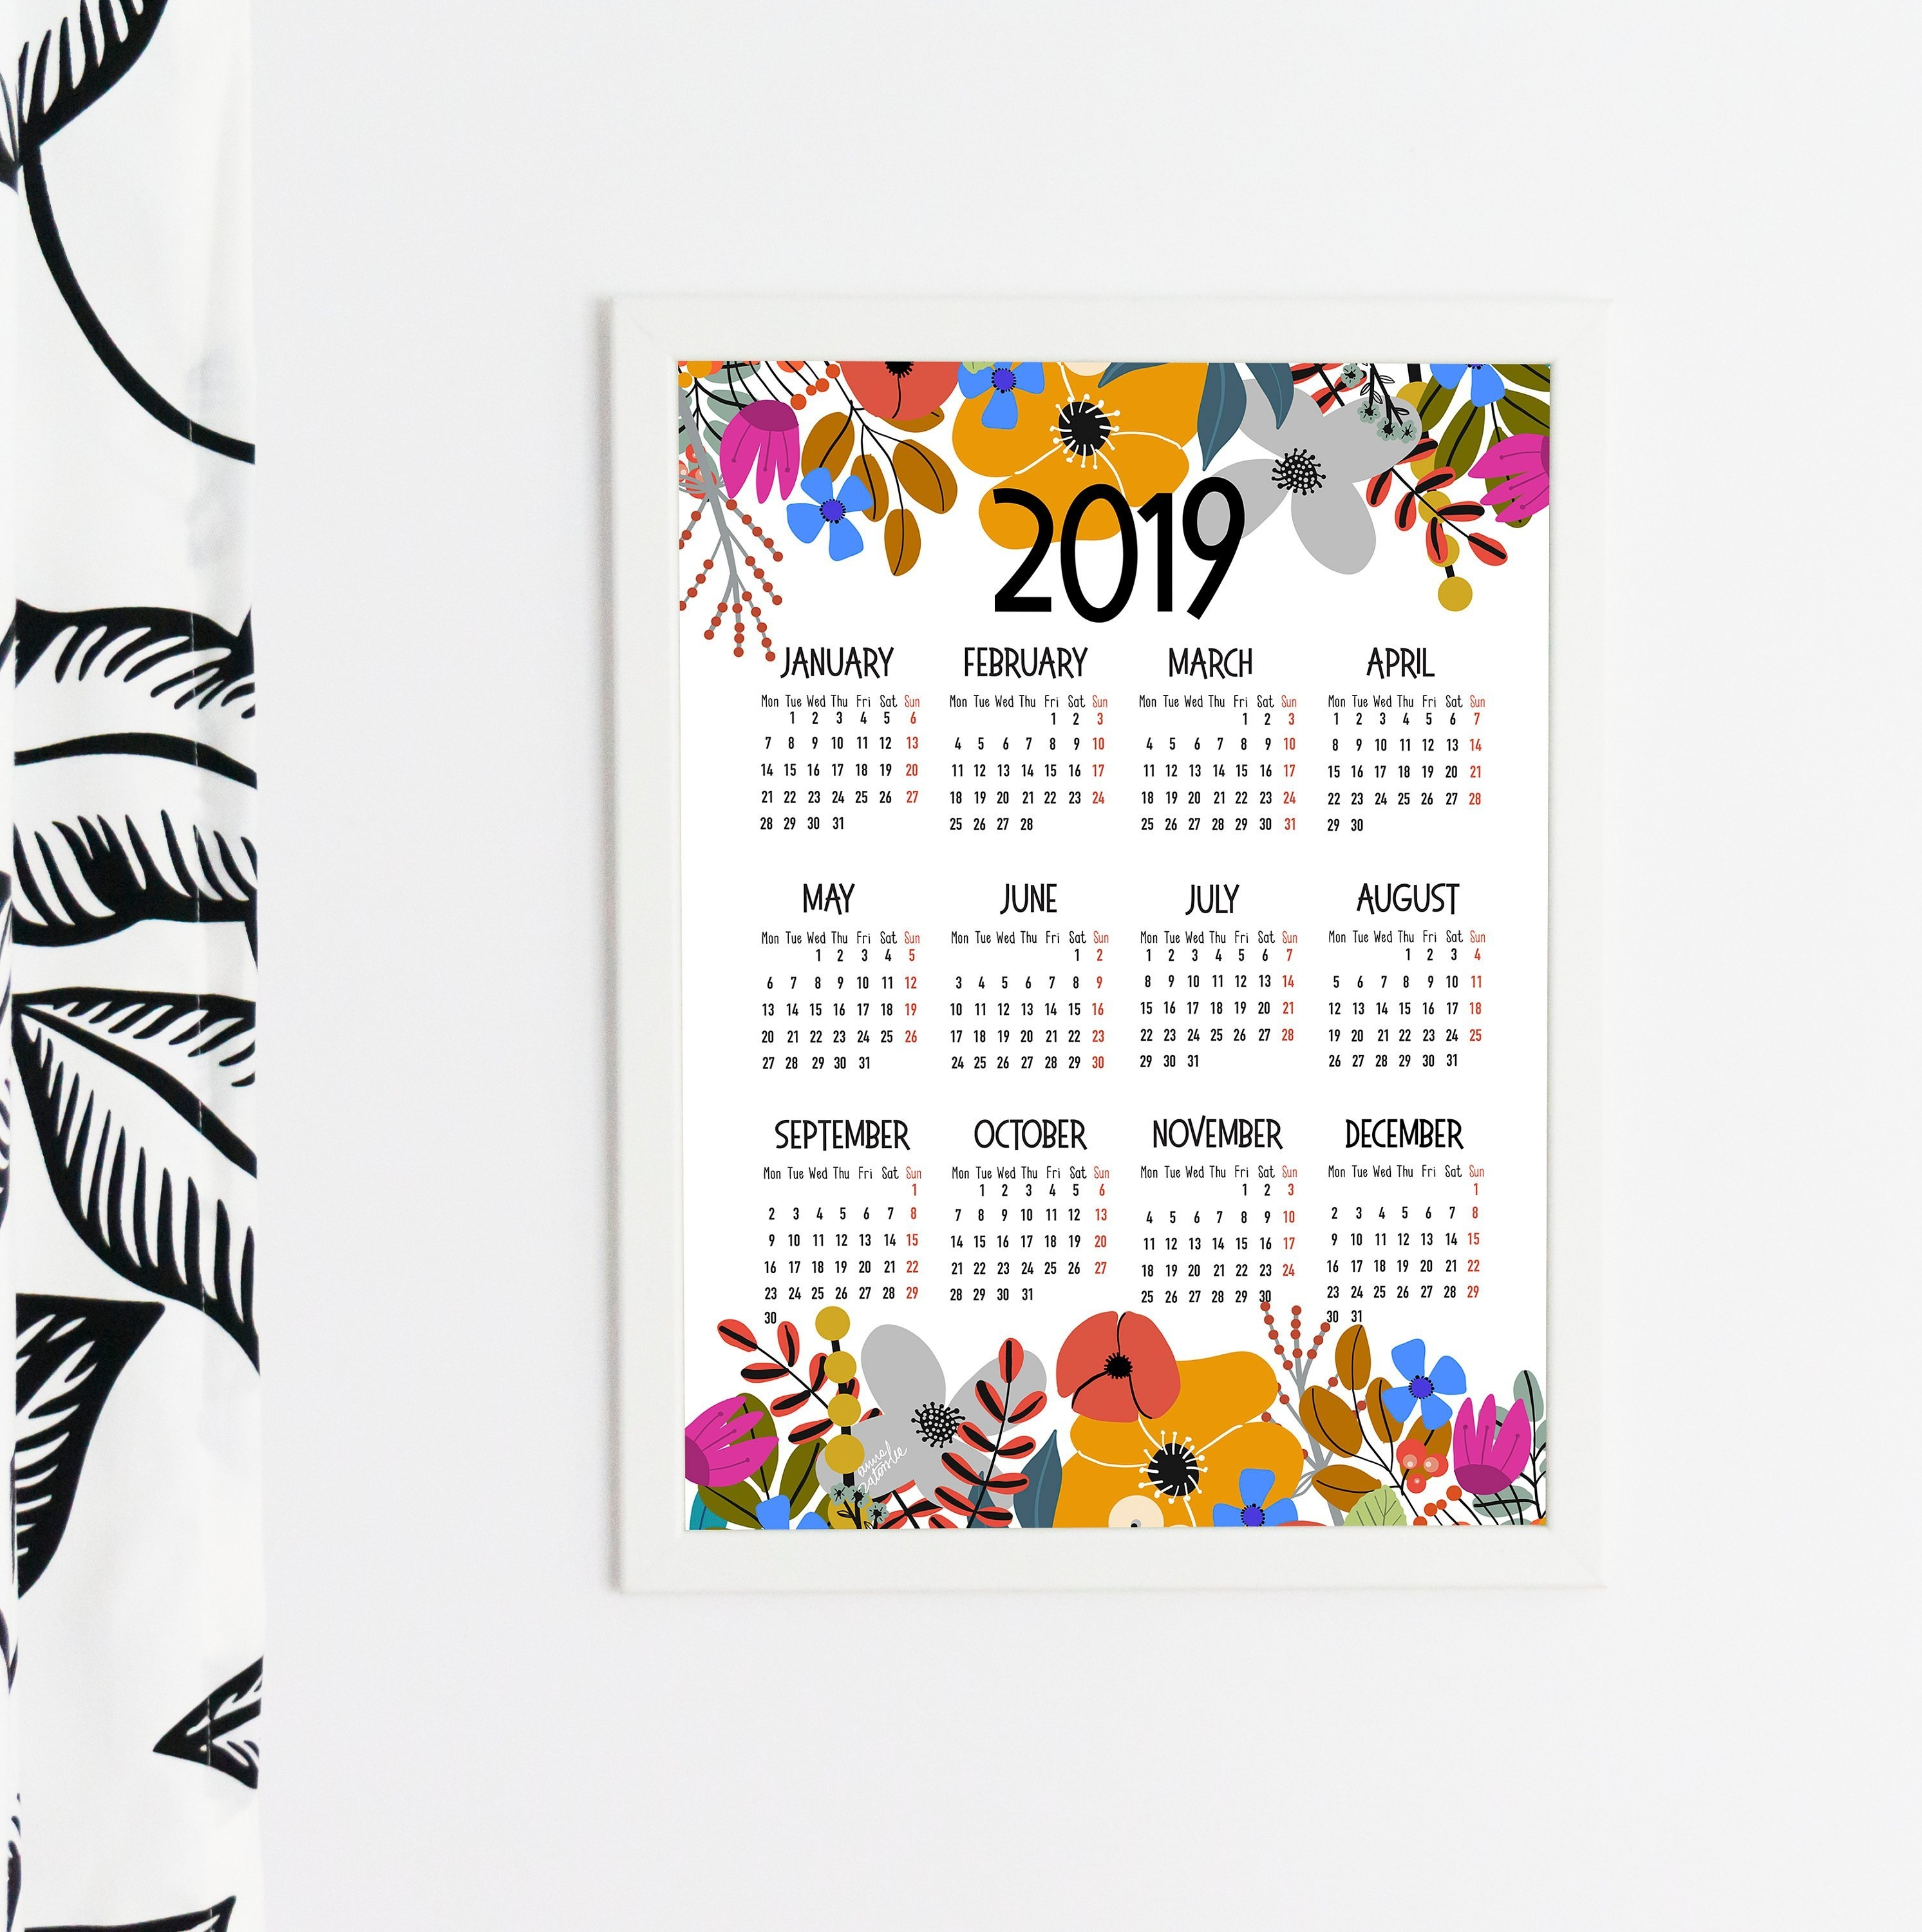 Printable Wall Calendar For 2019 With Flowers Theme. Year At A | Etsy Zis Calendar 2019